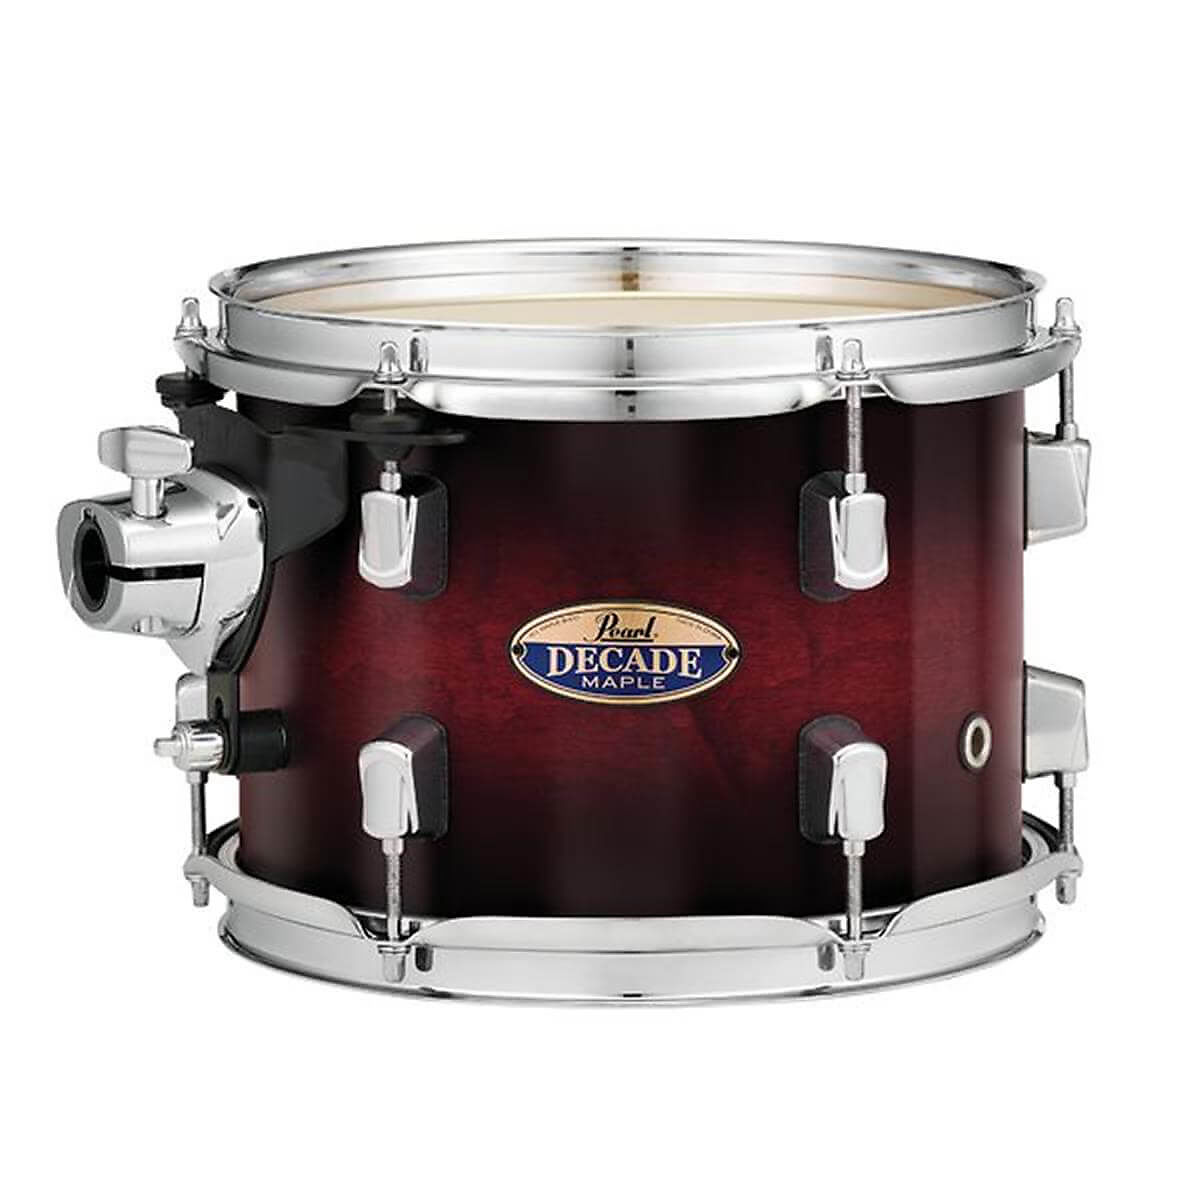 Pearl dmp1816f c261 decade maple series 18x16 floor tom for 18 inch floor tom for sale